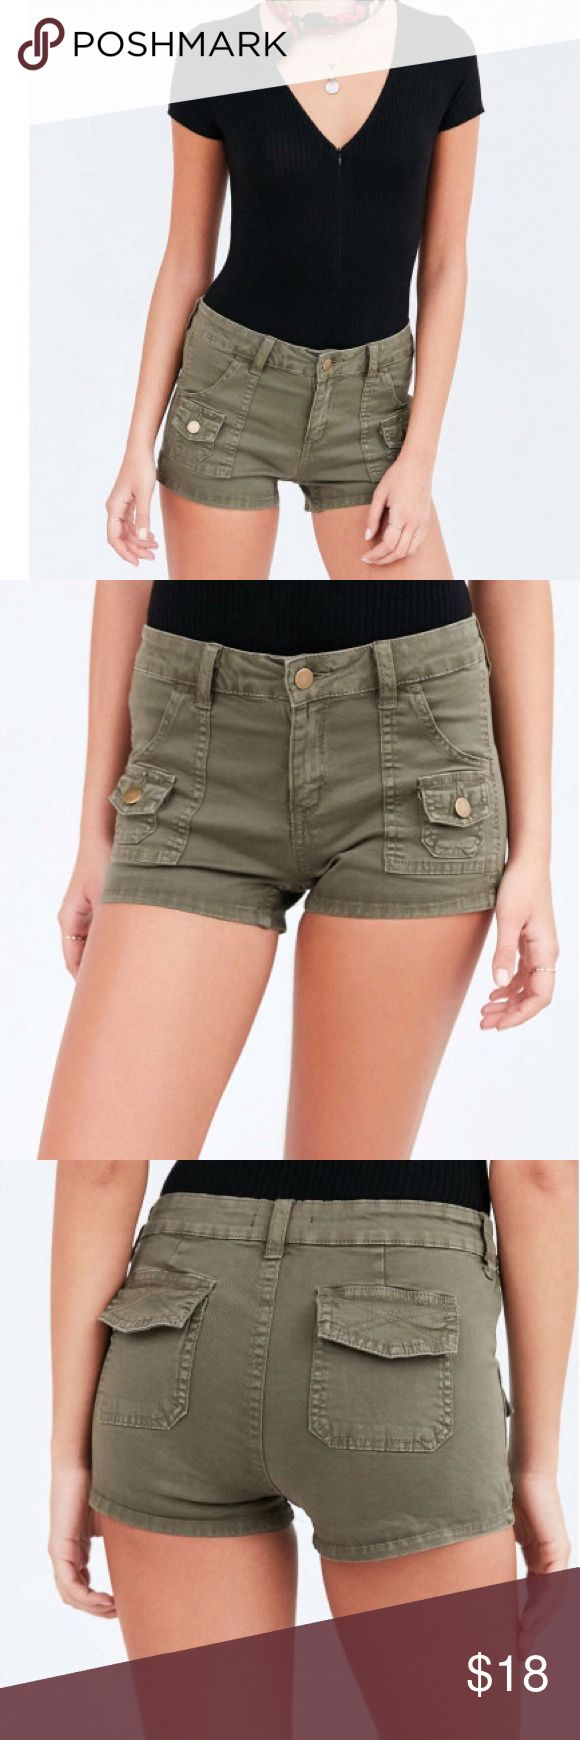 Hipster High Rise BDG Short from UO+ Free Gift Hipster High Rise BDG Utility Short from UO! Green Dana high-rise utility shirt features a button zip fly closure with 6 various pockets, Fitted + short for a flirty finish.  Cotton/Spandex Mix; FREE GIFT with purchase see picture 4 Urban Outfitters Shorts